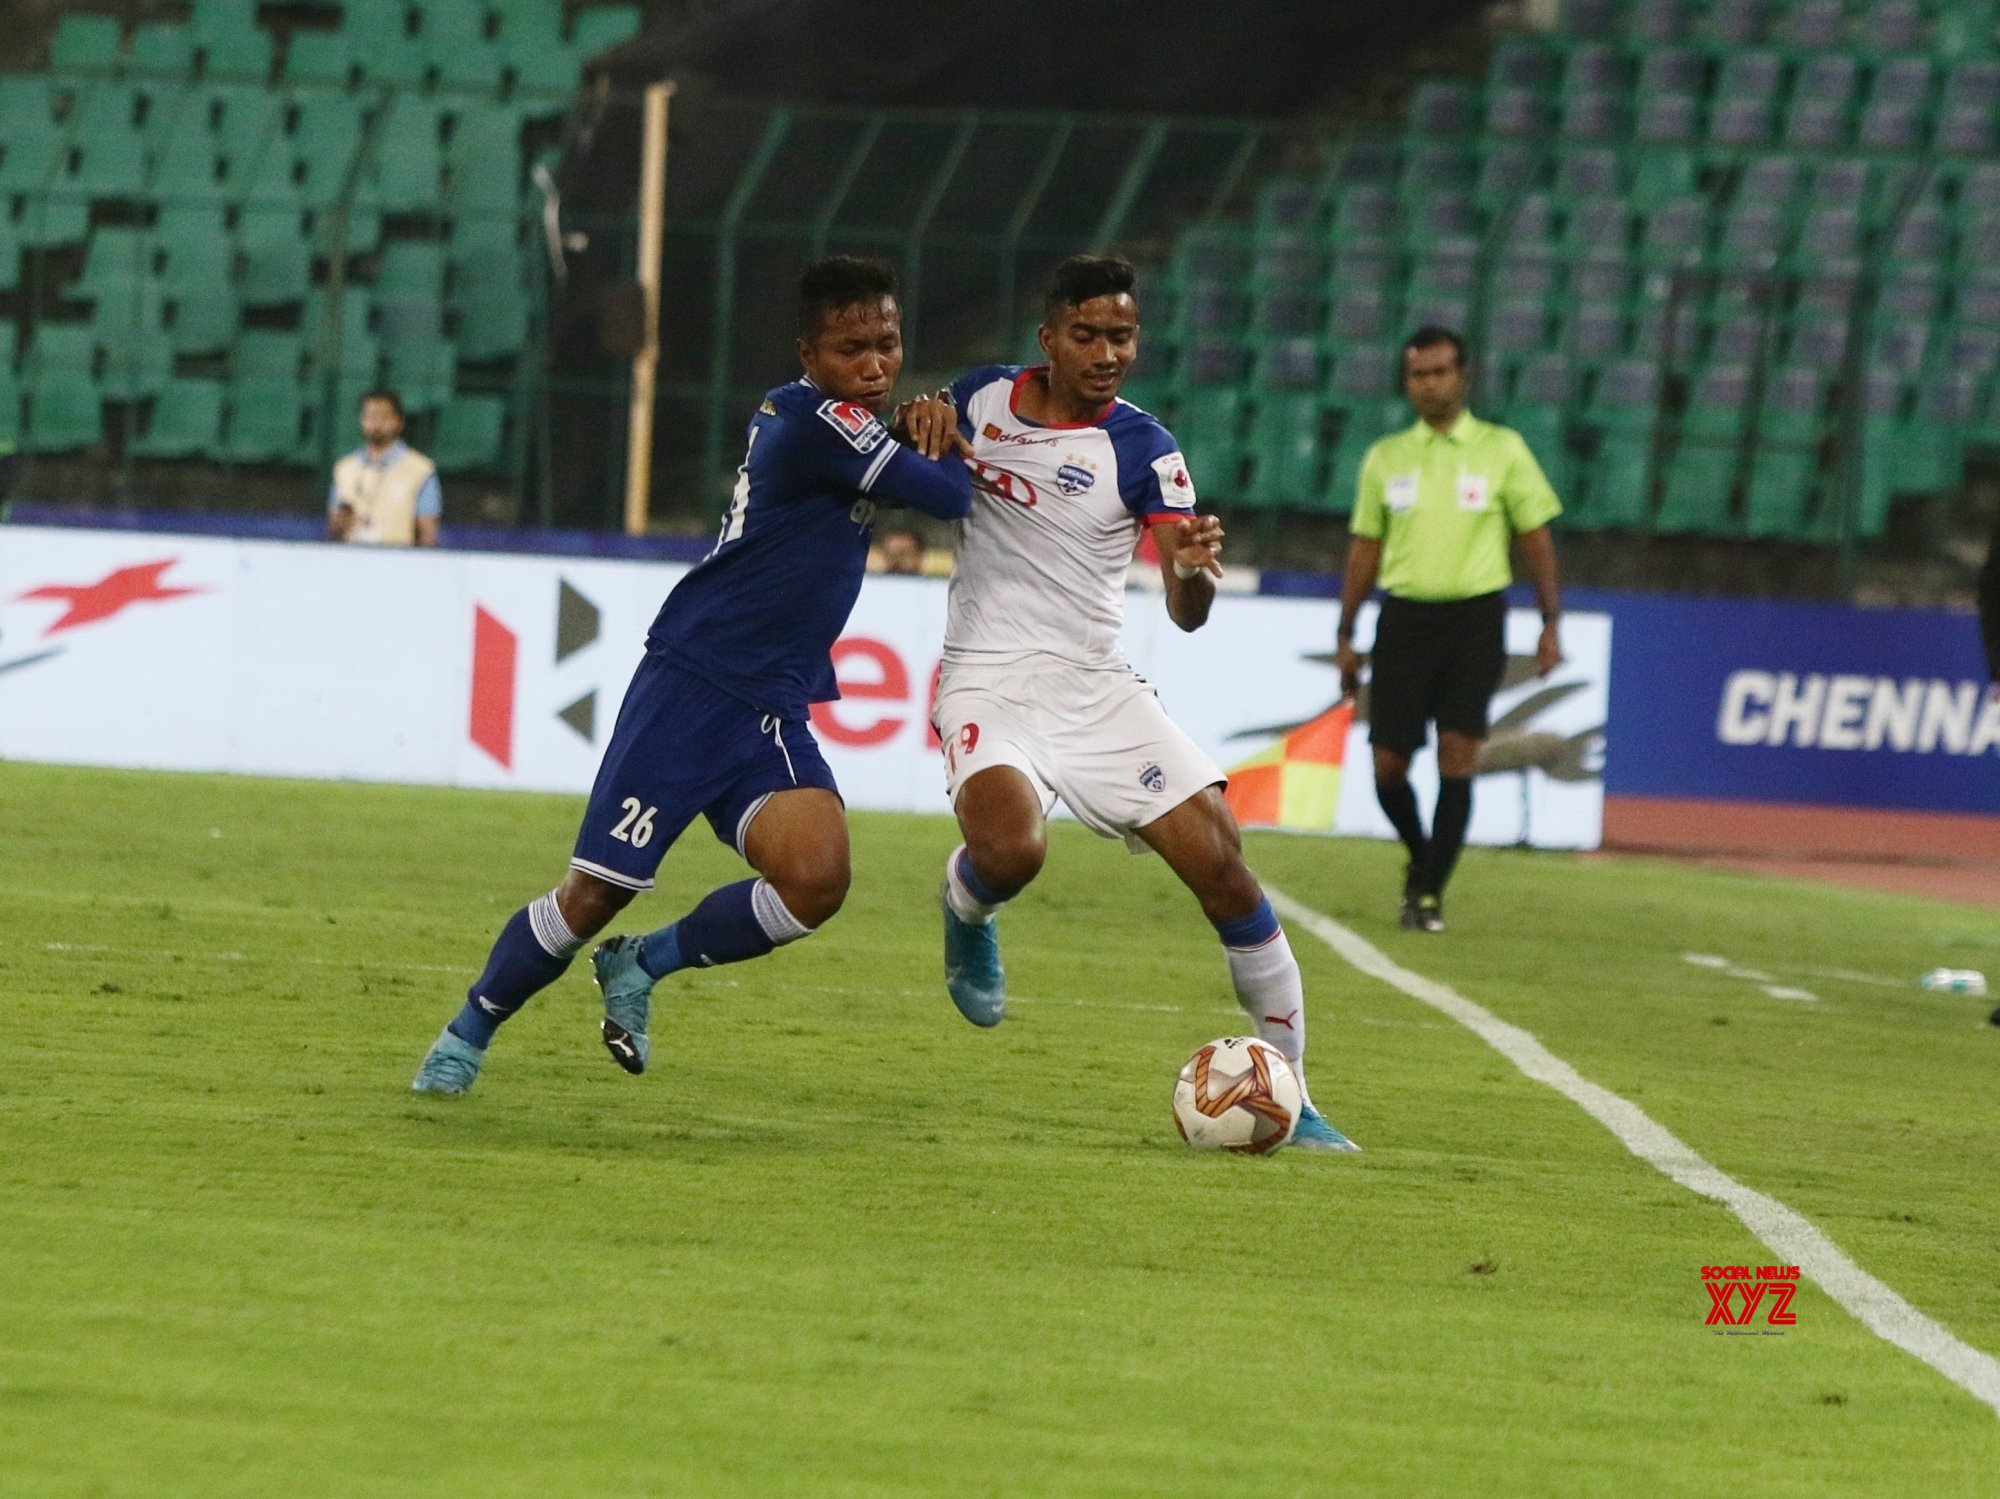 Chennai: Indian Super League 2019 - 20: Chennaiyain FC Vs Bengaluru FC #Gallery